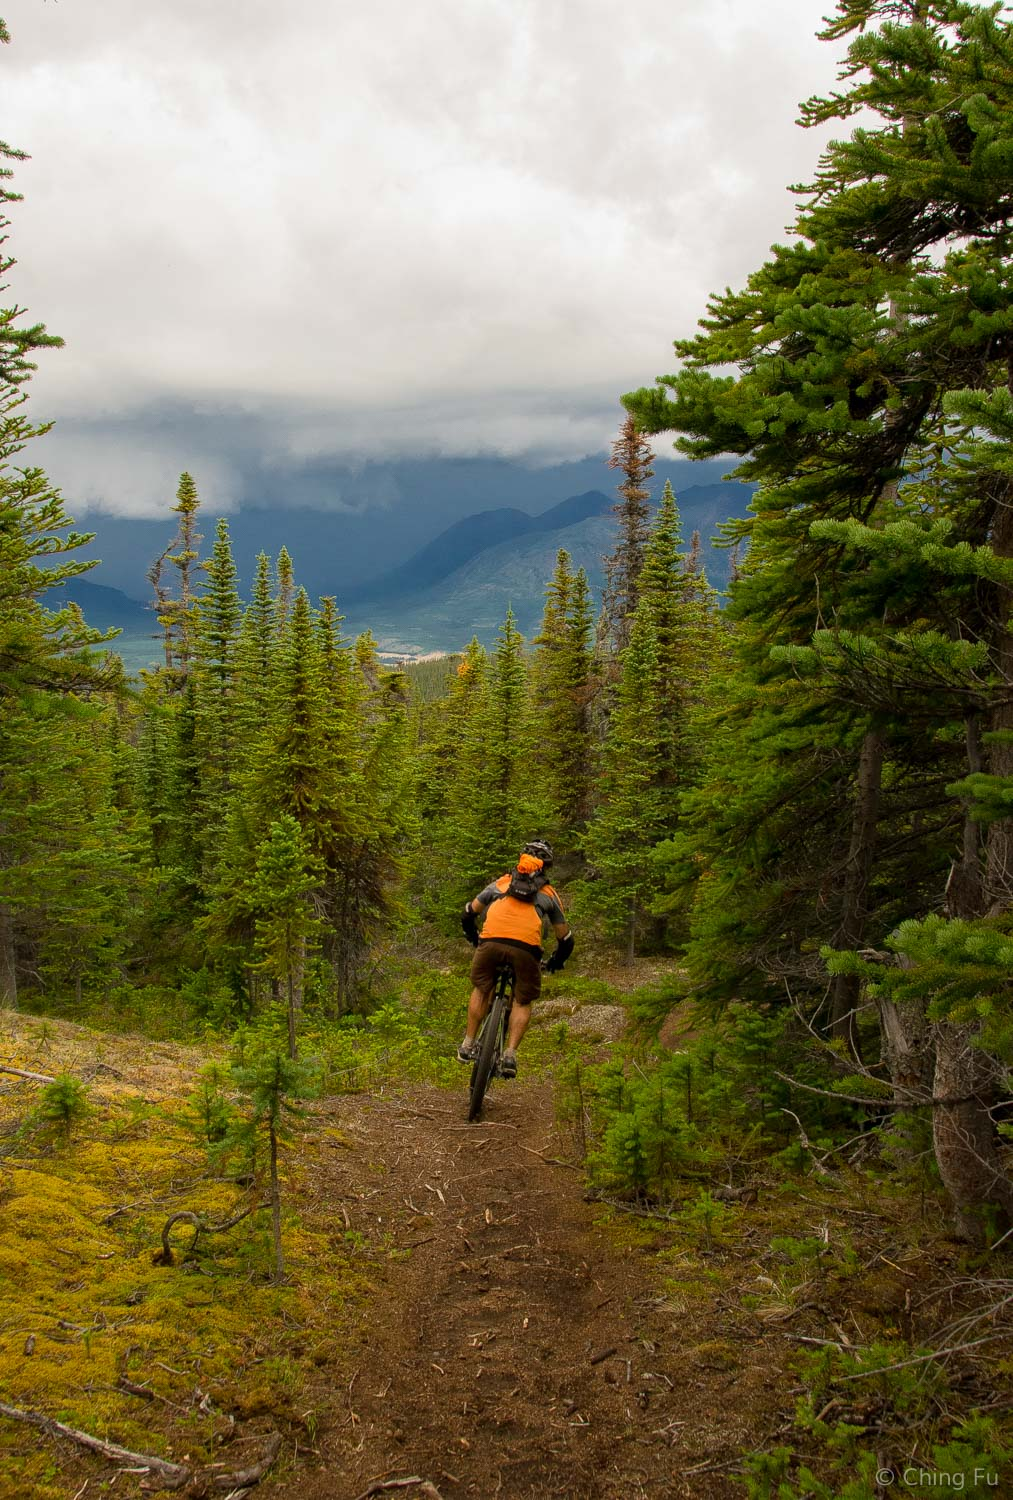 Riding down Nares View trail and into the storm.